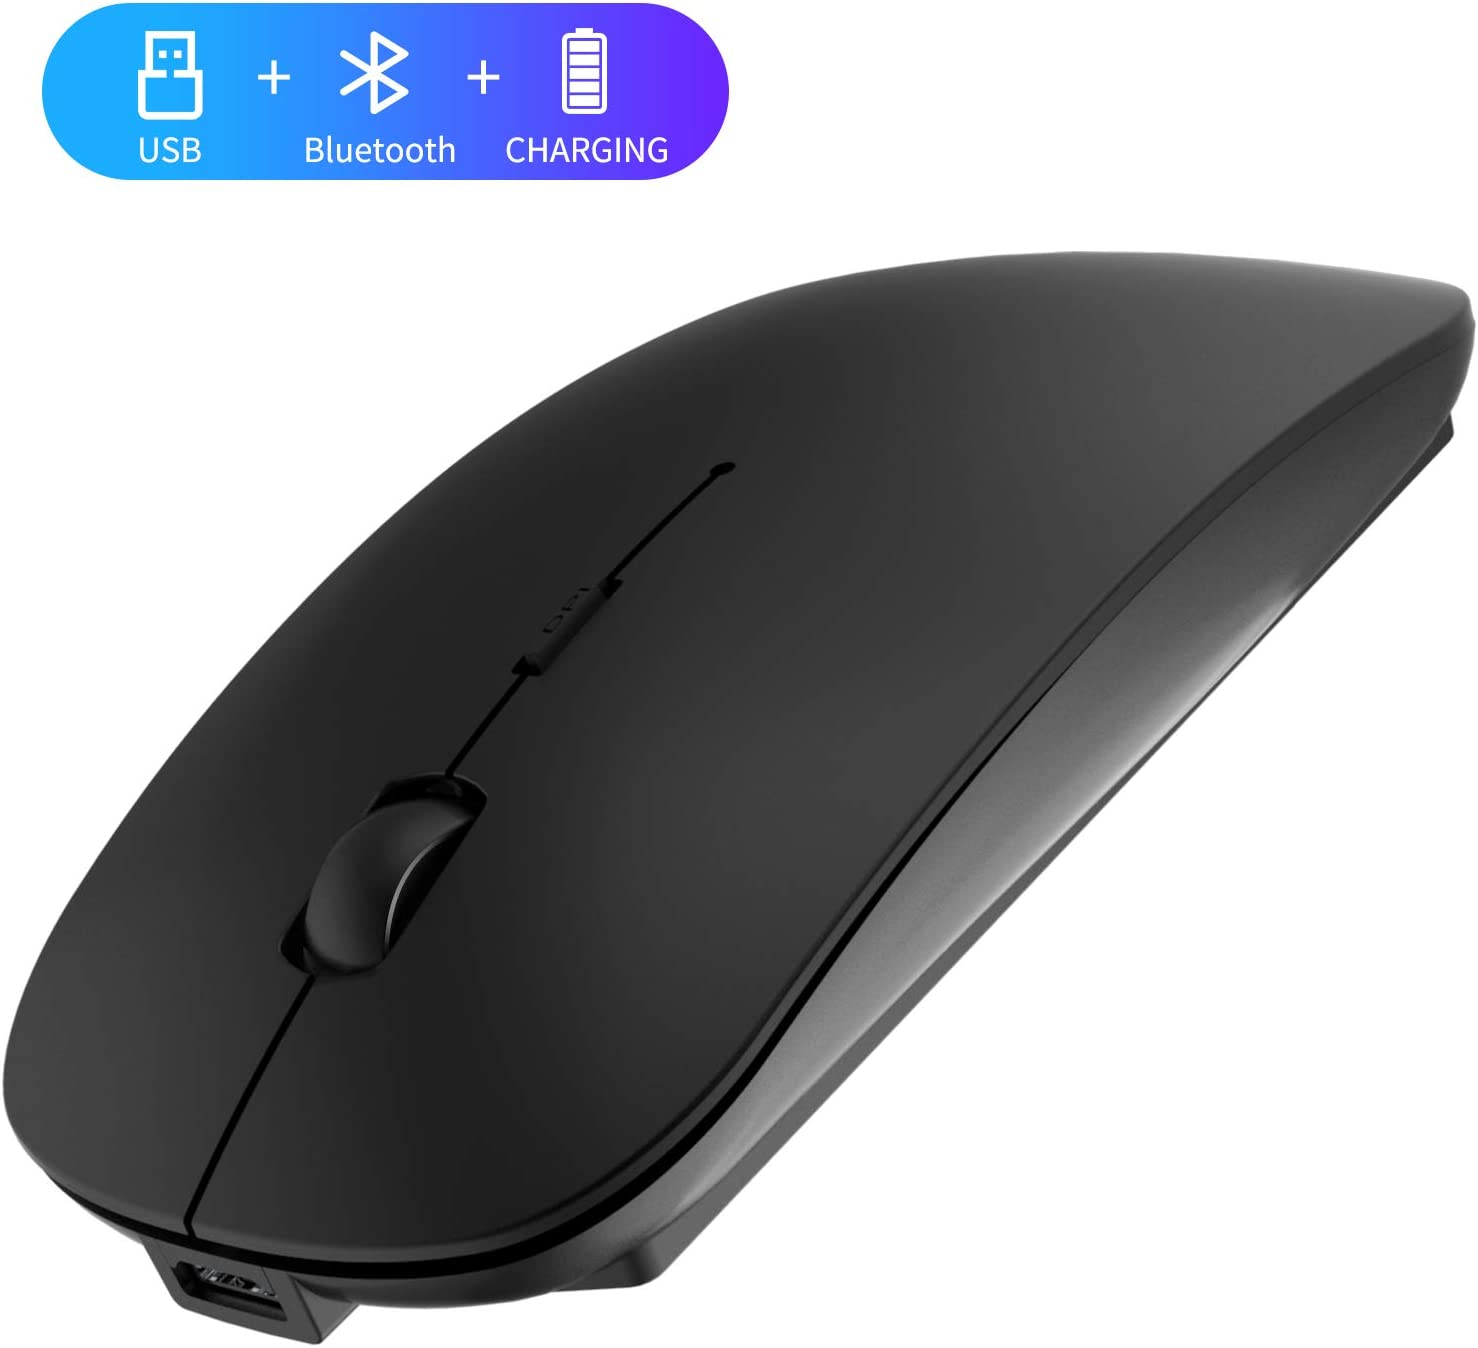 2.4GHz Wireless Bluetooth Mouse, 3 Adjustable DPI, Dual Mode Slim Rechargeable Wireless Mouse Silent USB Mice,Compatible for Laptop Windows Mac Android MAC PC Computer (Black)